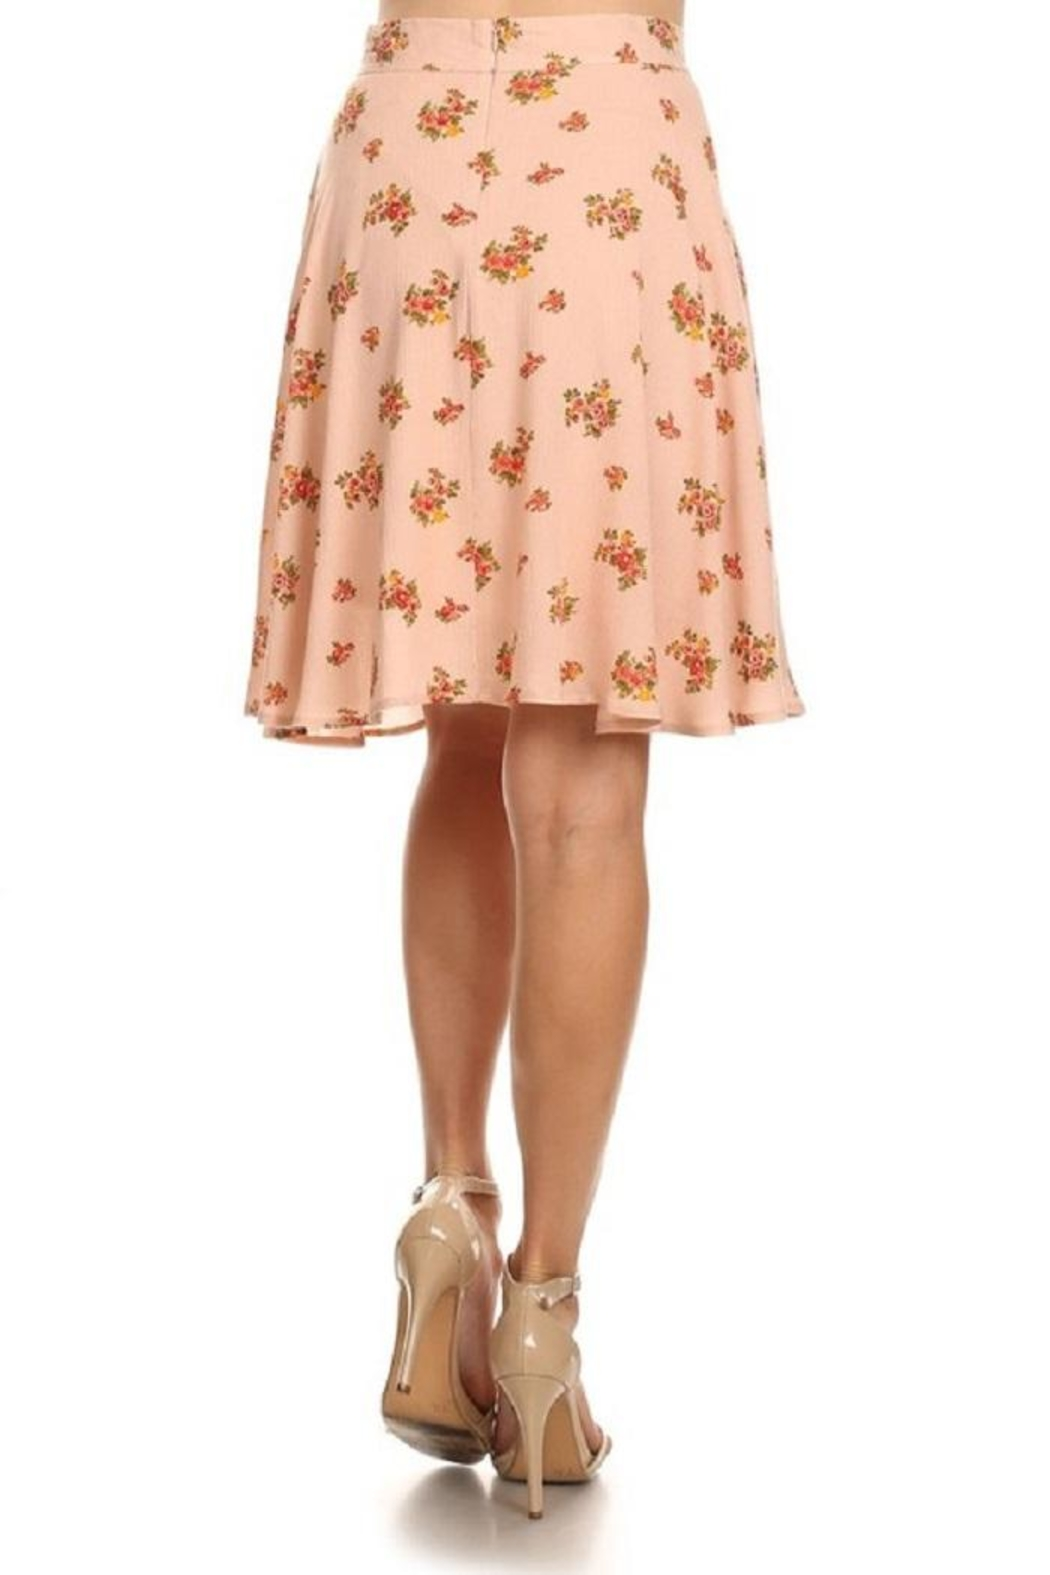 Emory Park Peach Floral Skirt - Front Full Image